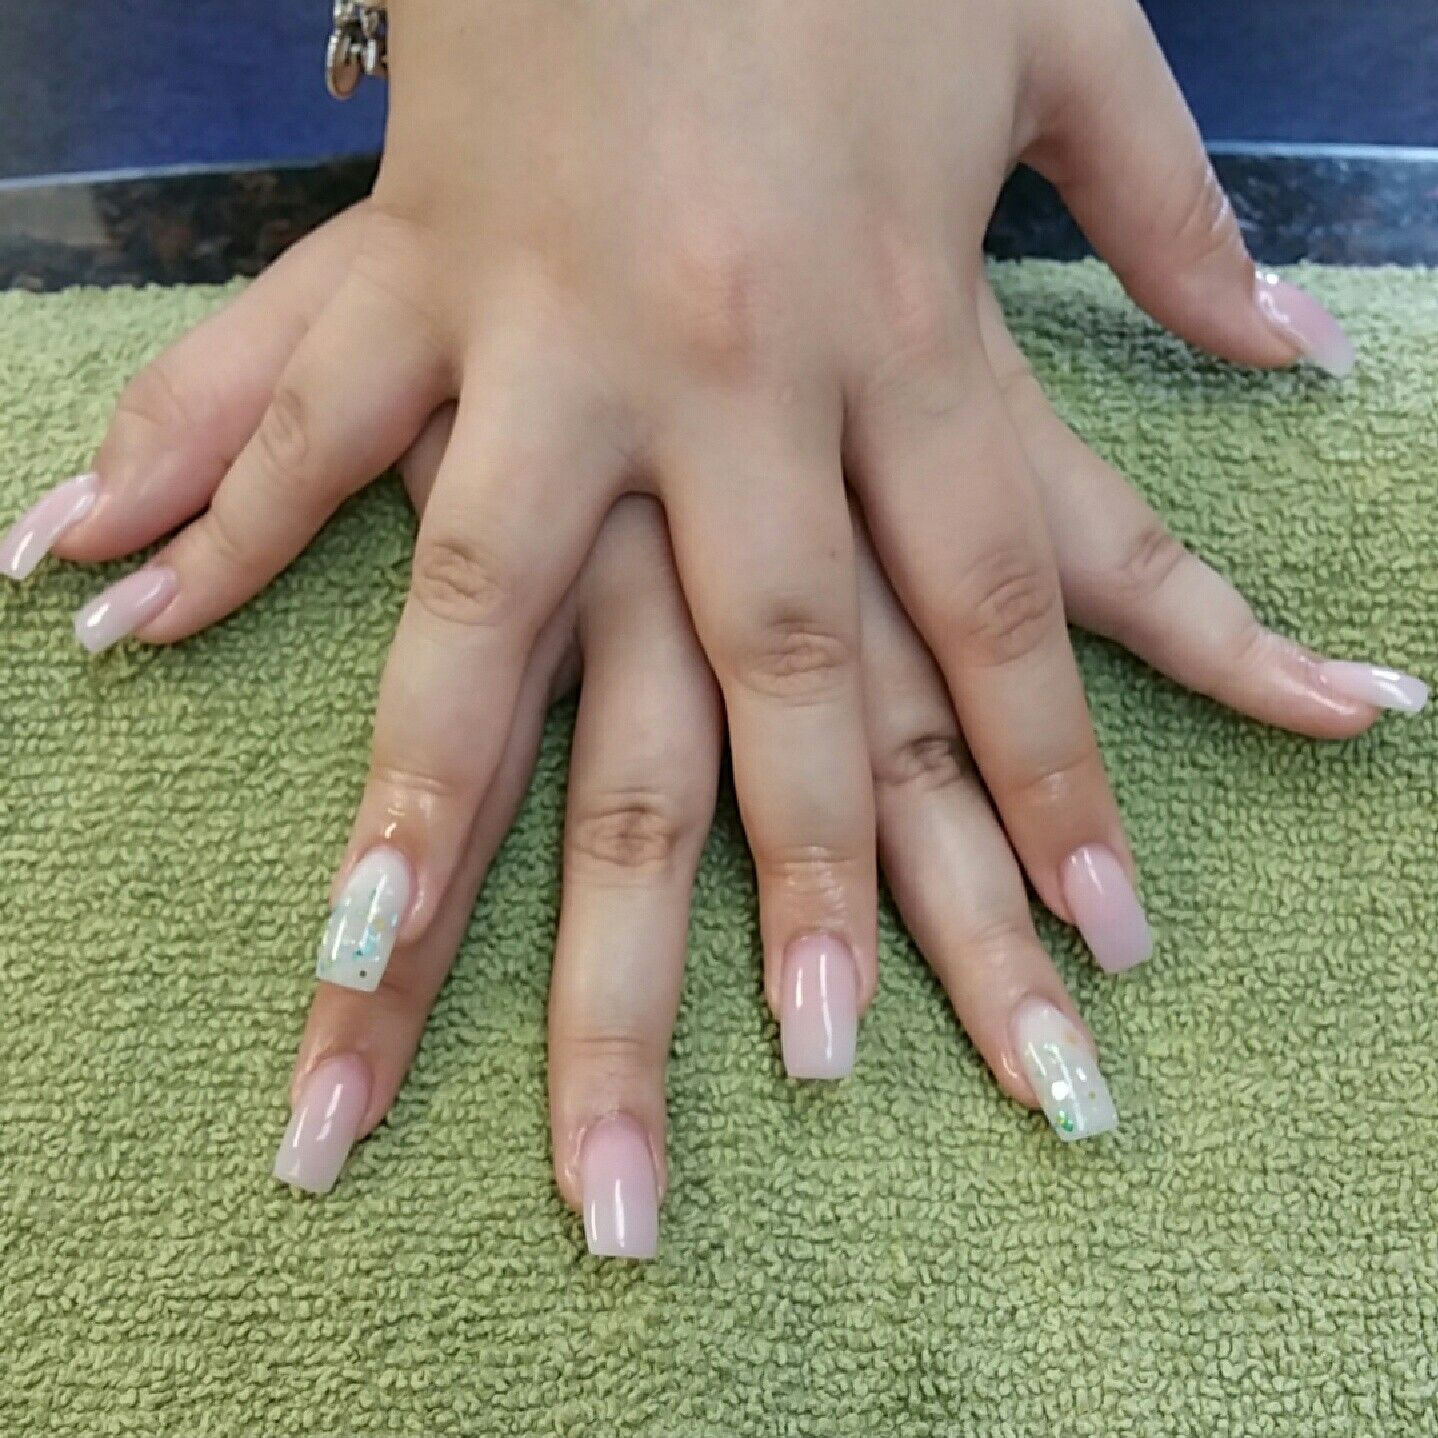 Acrylic Nails With Encapsulated Seashells And Glitter Acrylic Nails Nails Glitter